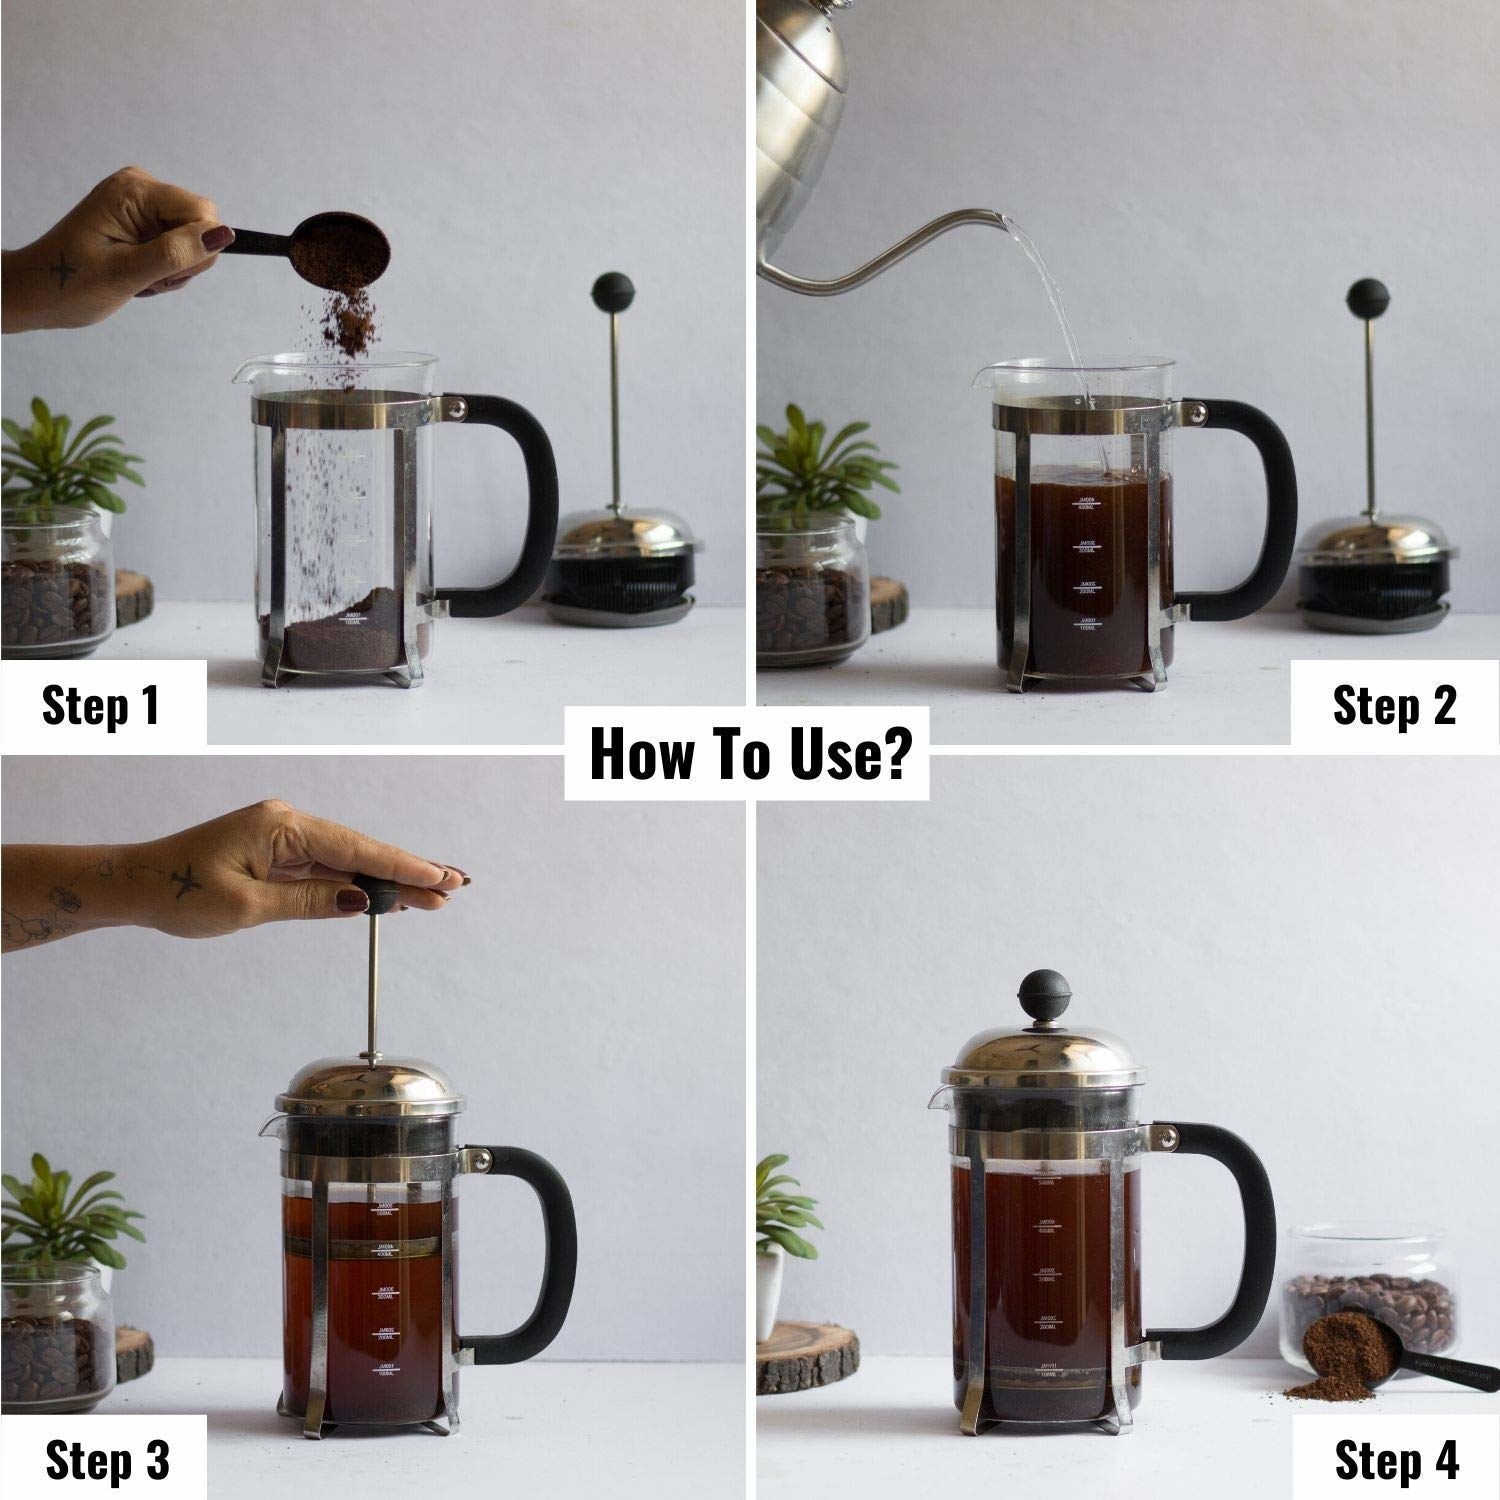 Usage of the French Press coffee maker